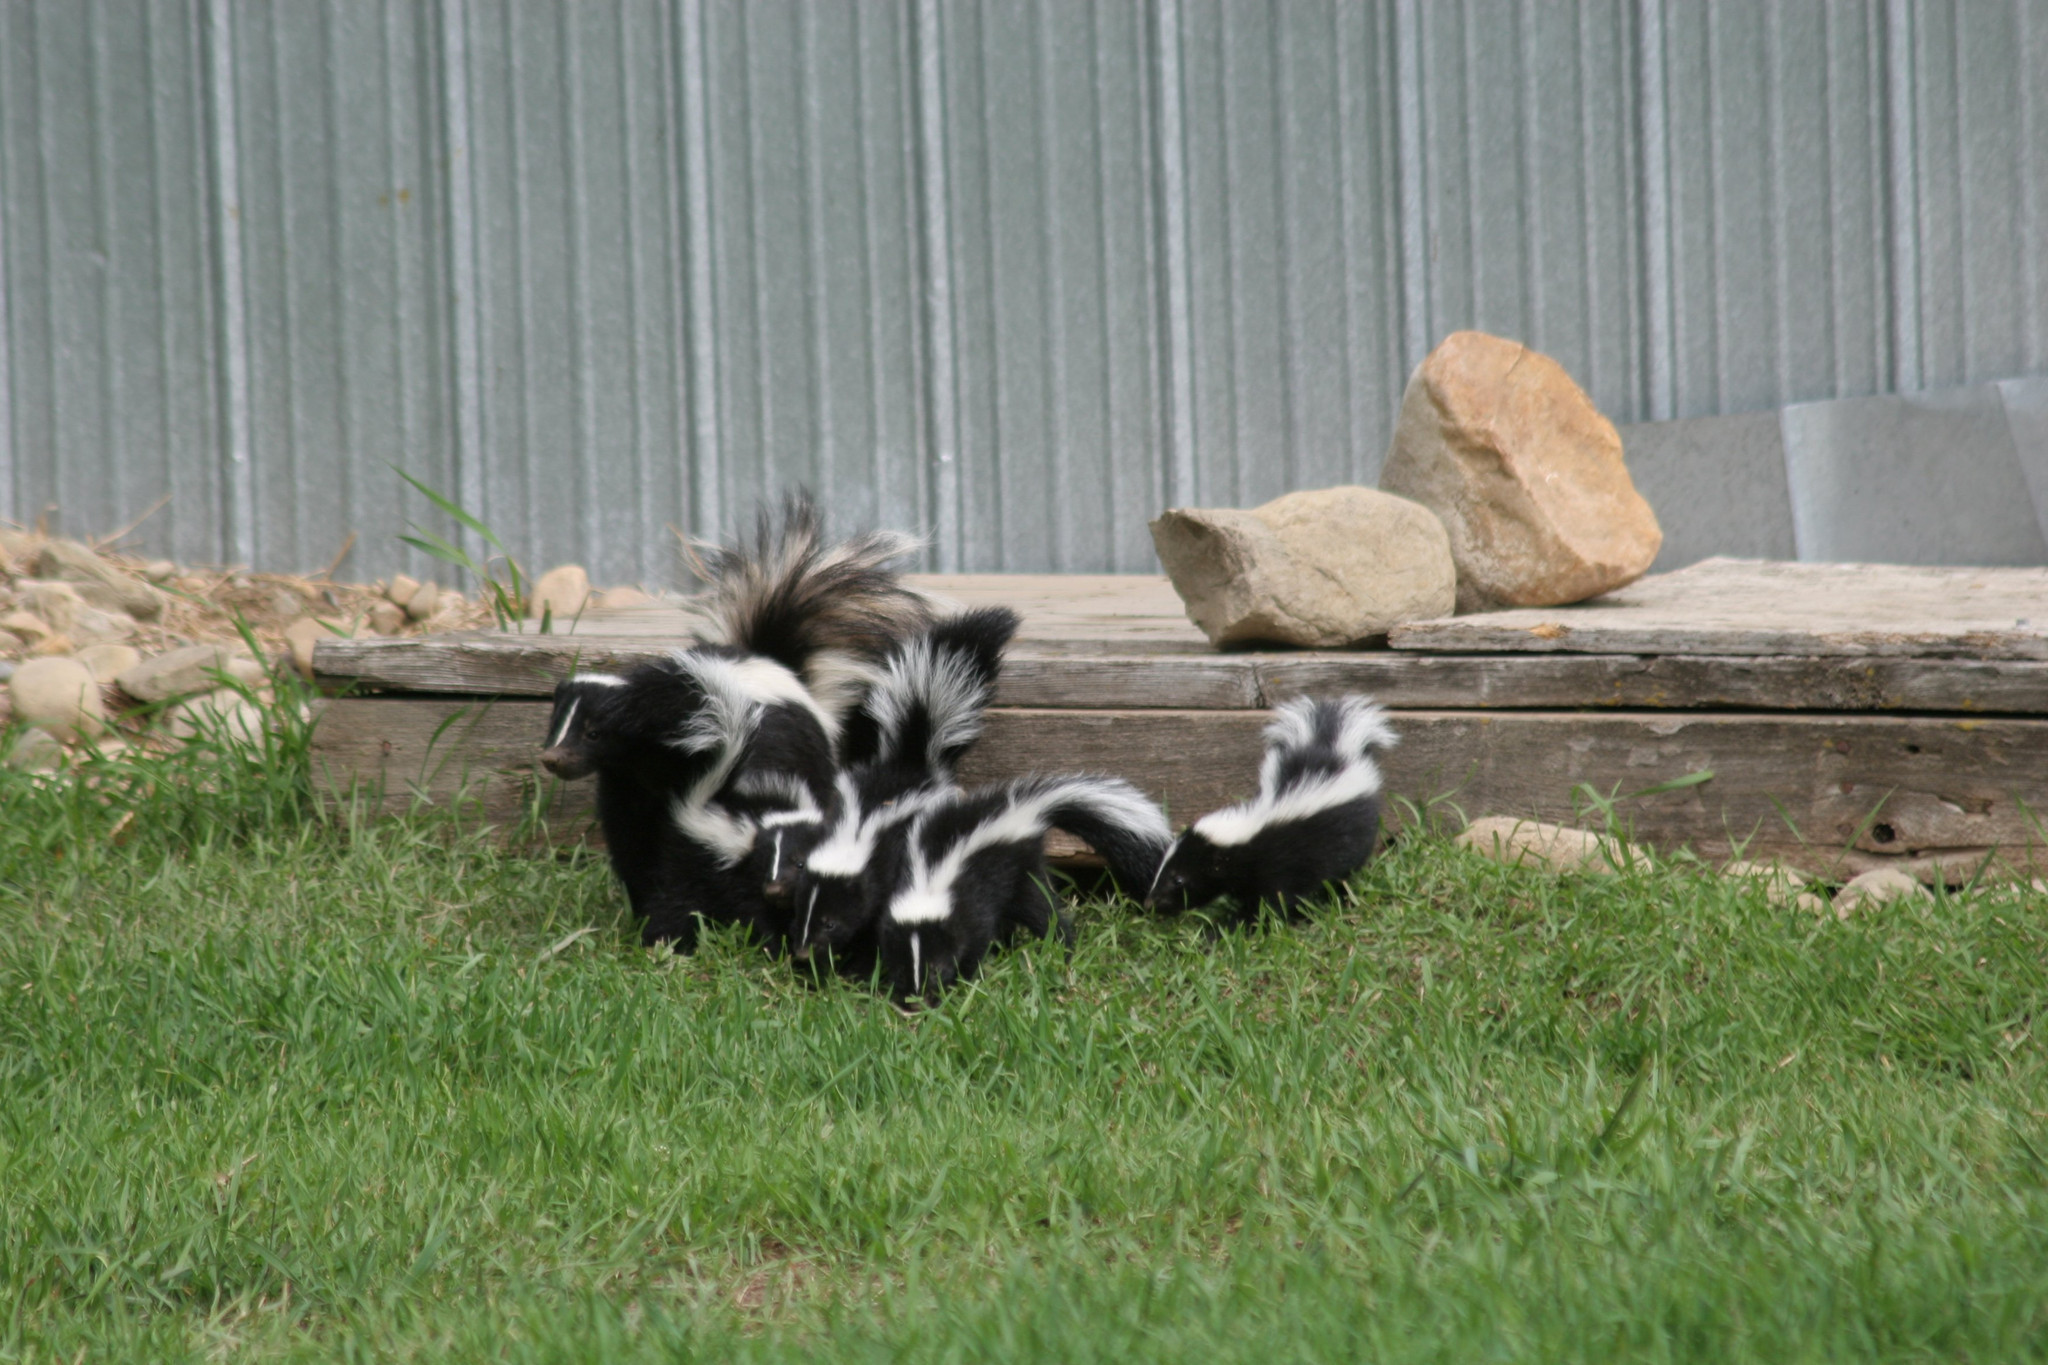 A group of skunks is called a surfeit.